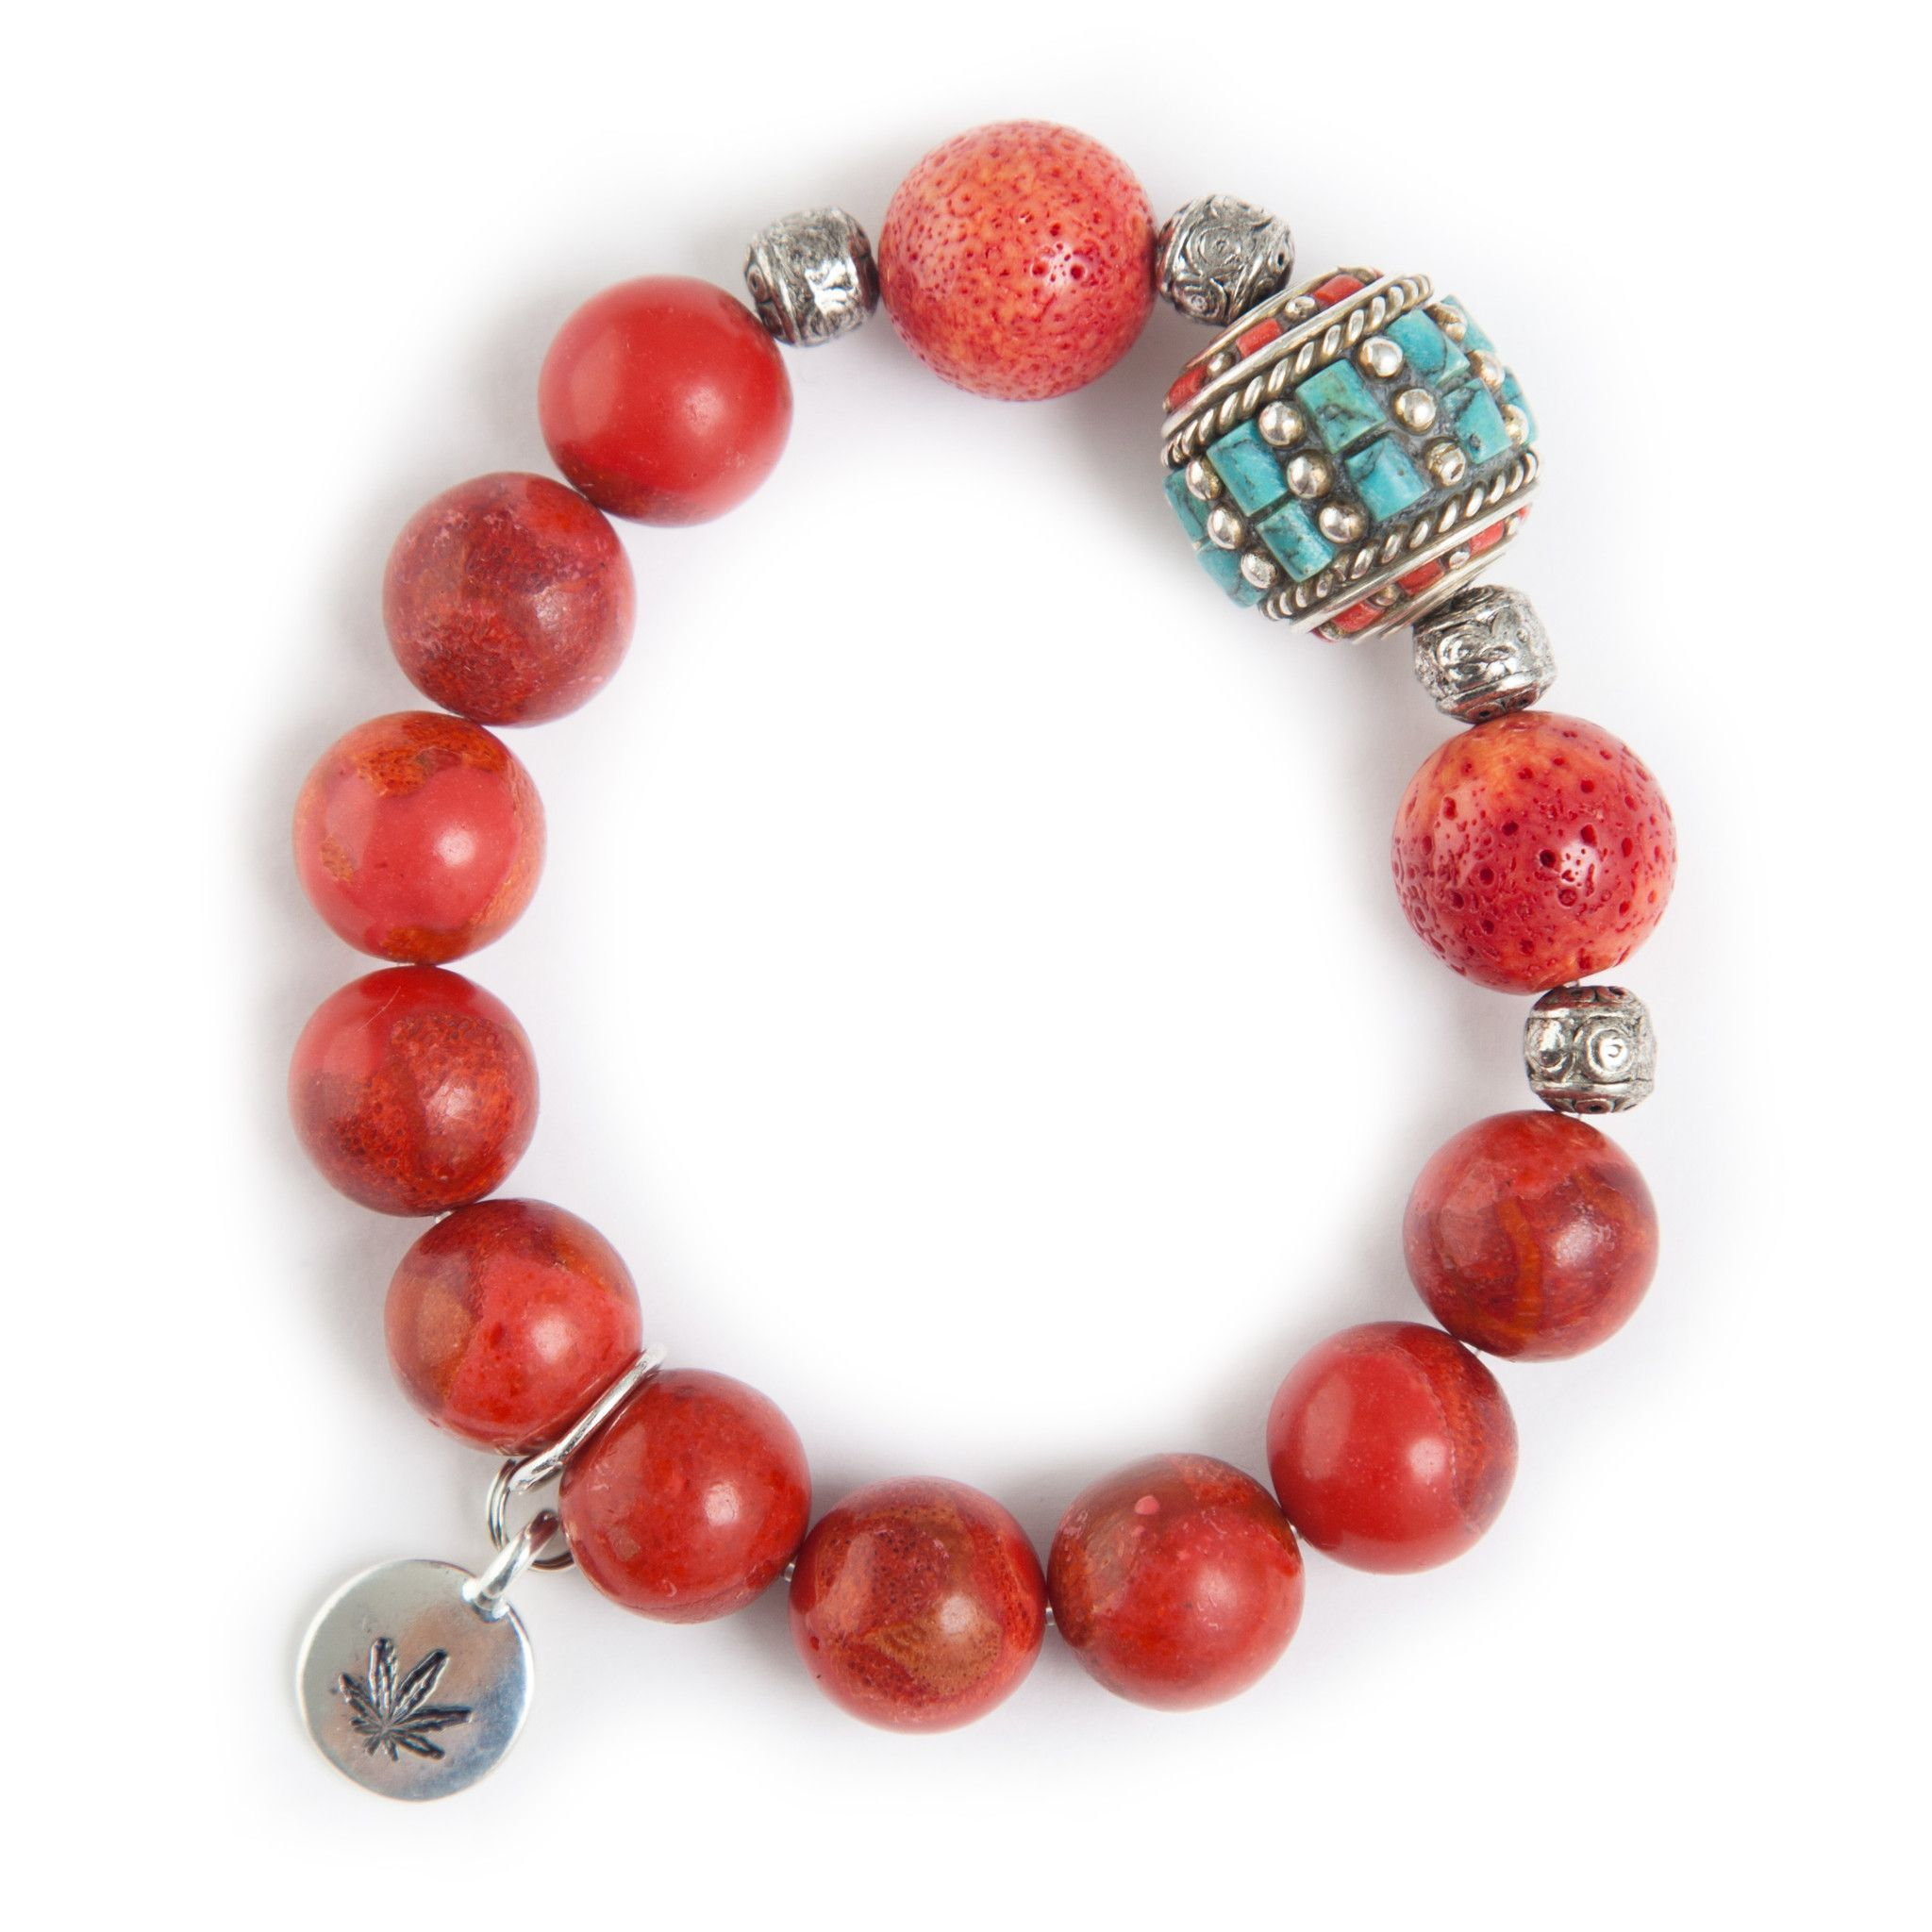 Coral Bead Bracelet with Cylinder Tibetan Bead Accent